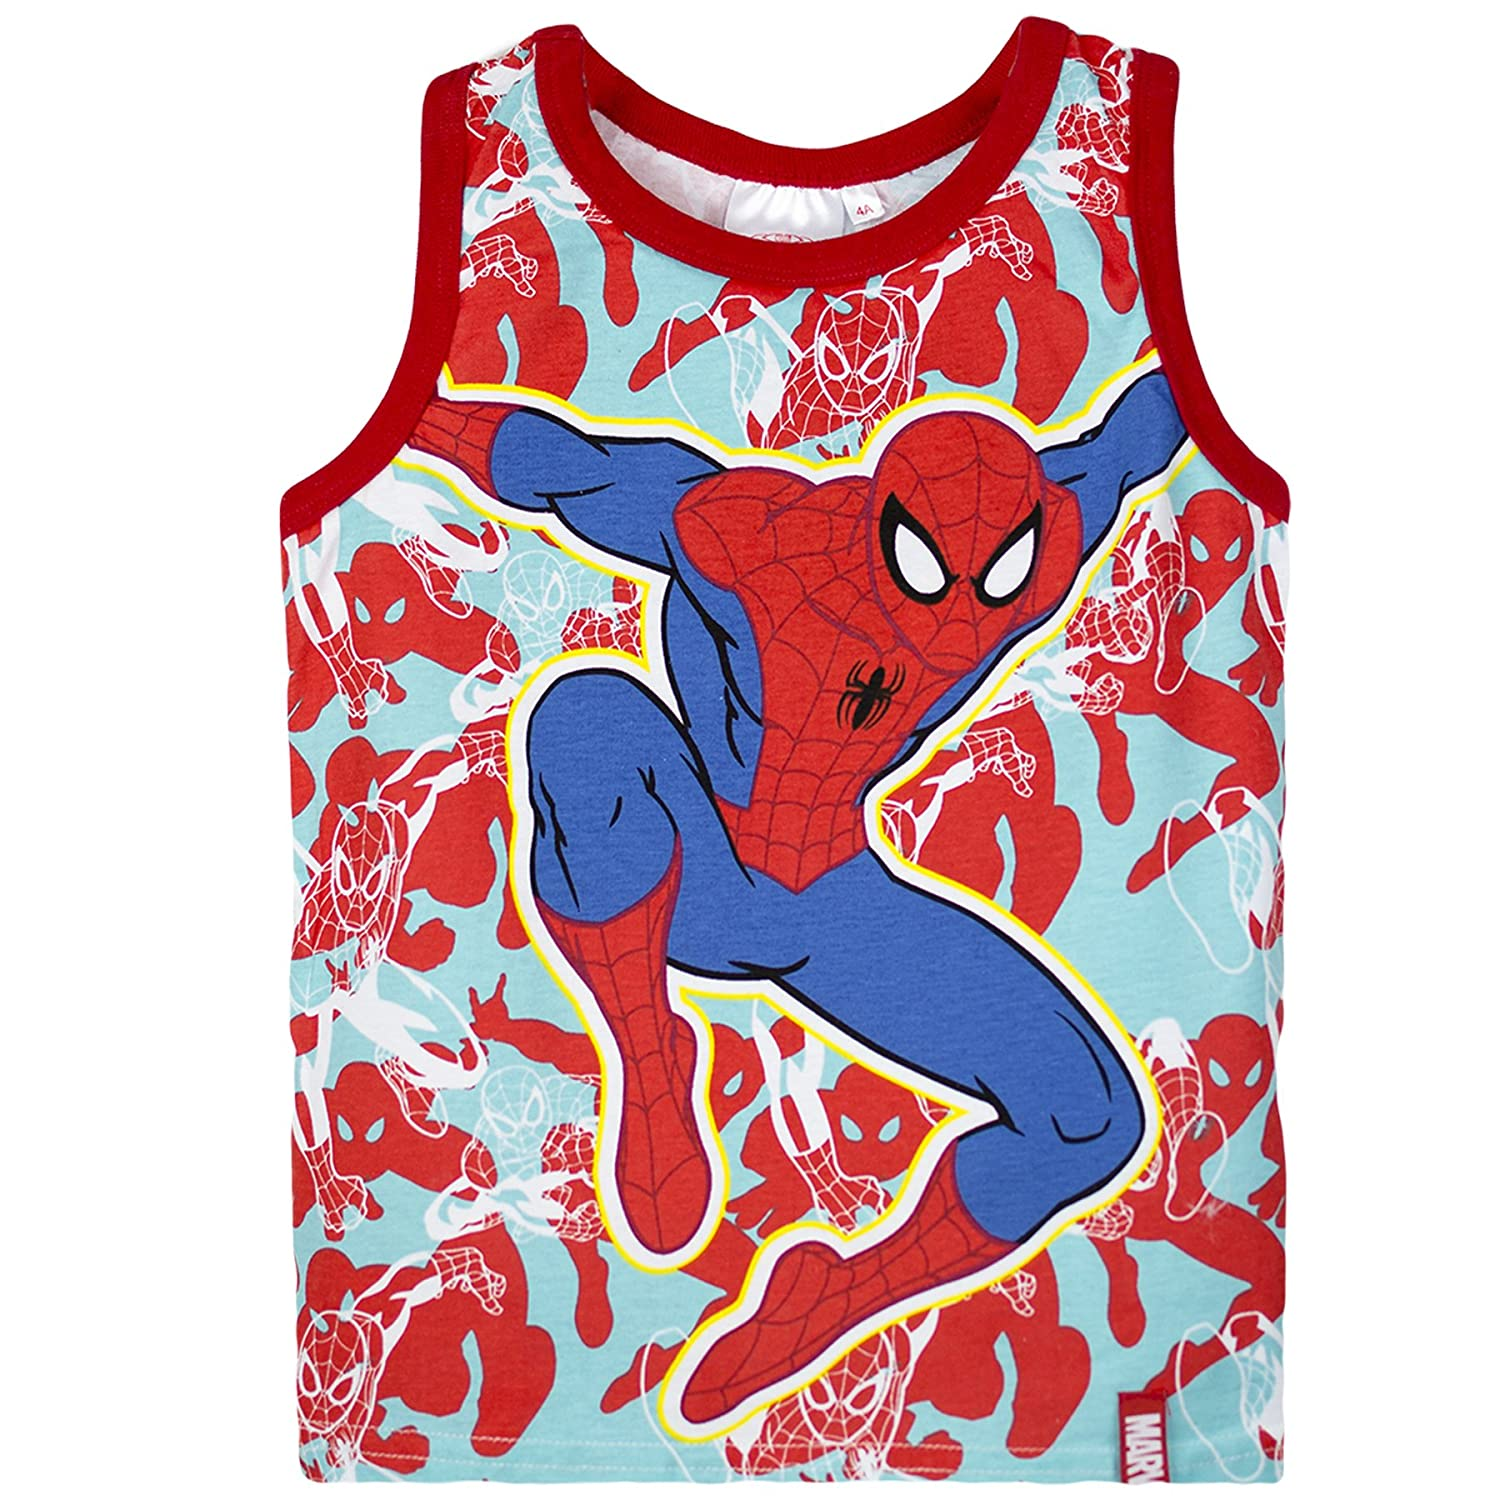 Spiderman Marvel Boys Top, Vest - Collection 2016 - 2-8 Years RED 8Y